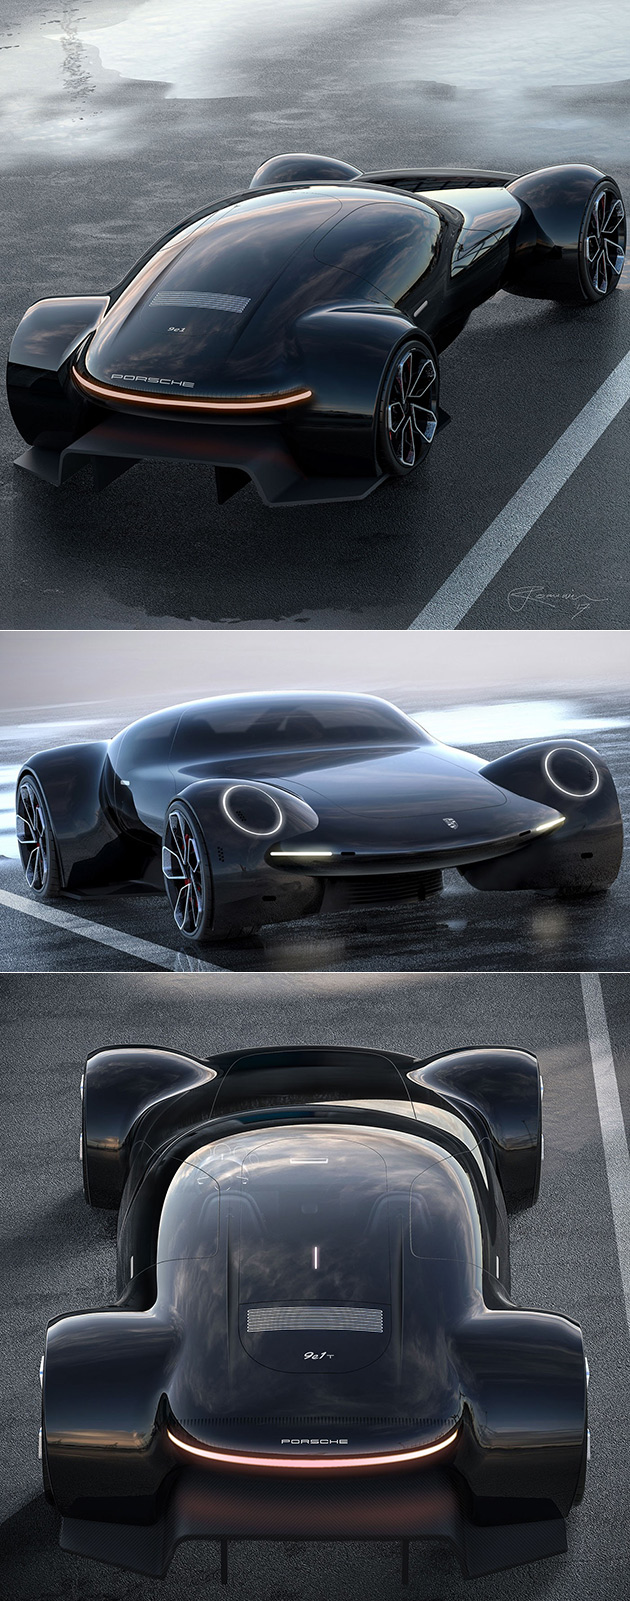 Porsche 9e1 Electric Hypercar